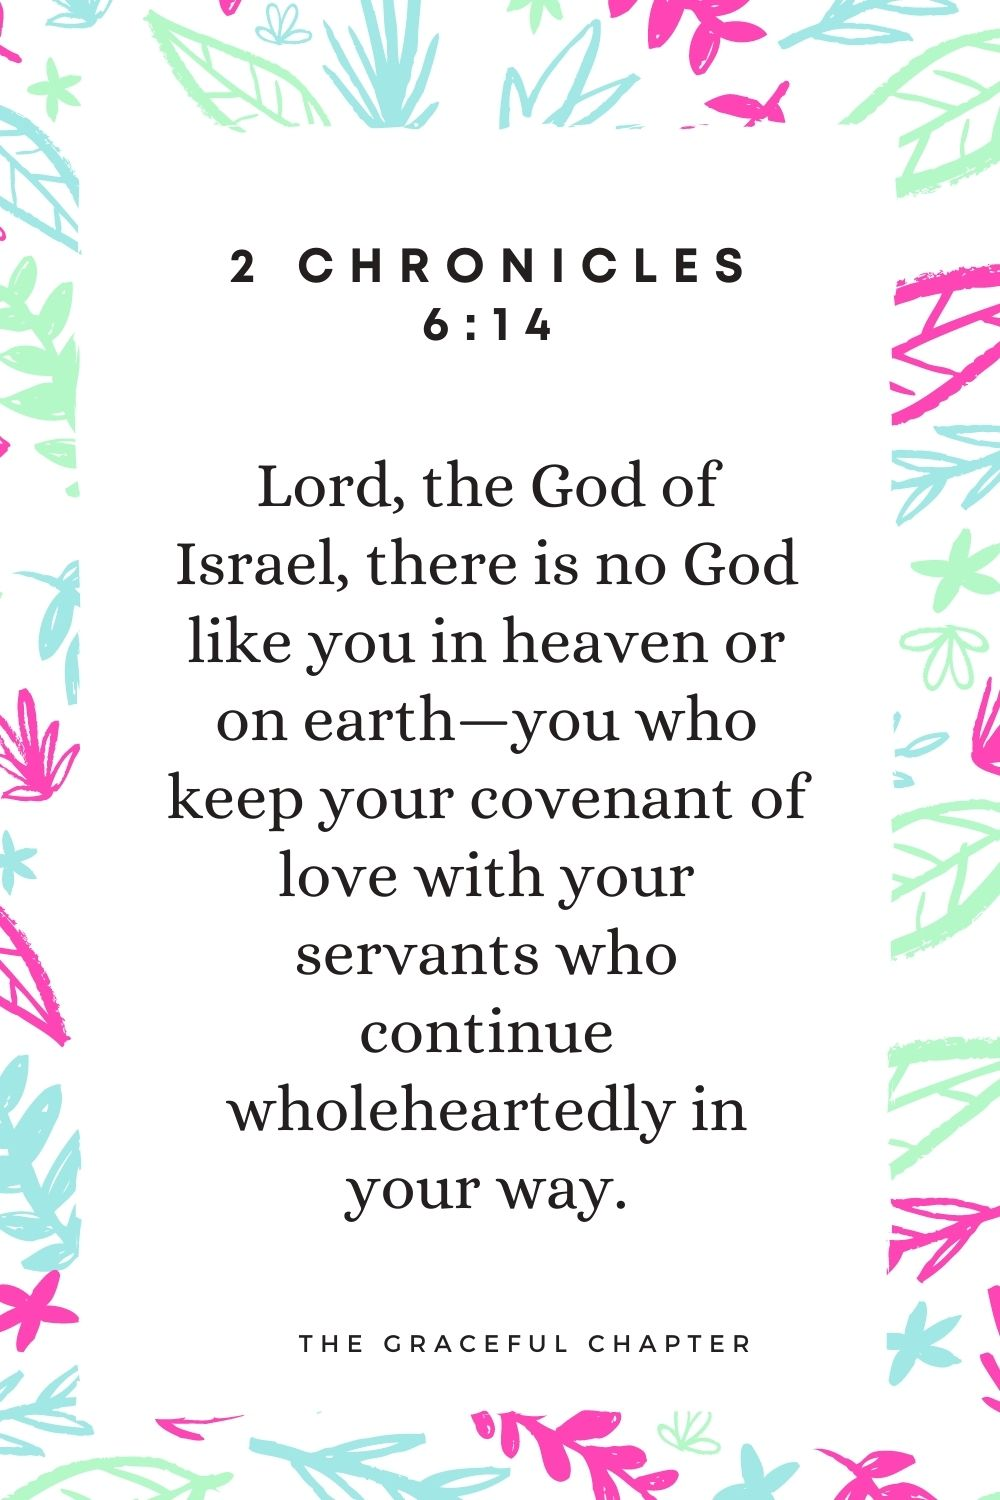 """""""Lord, the God of Israel, there is no God like you in heaven or on earth—you who keep your covenant of love with your servants who continue wholeheartedly in your way. 2 Chronicles 6:14"""